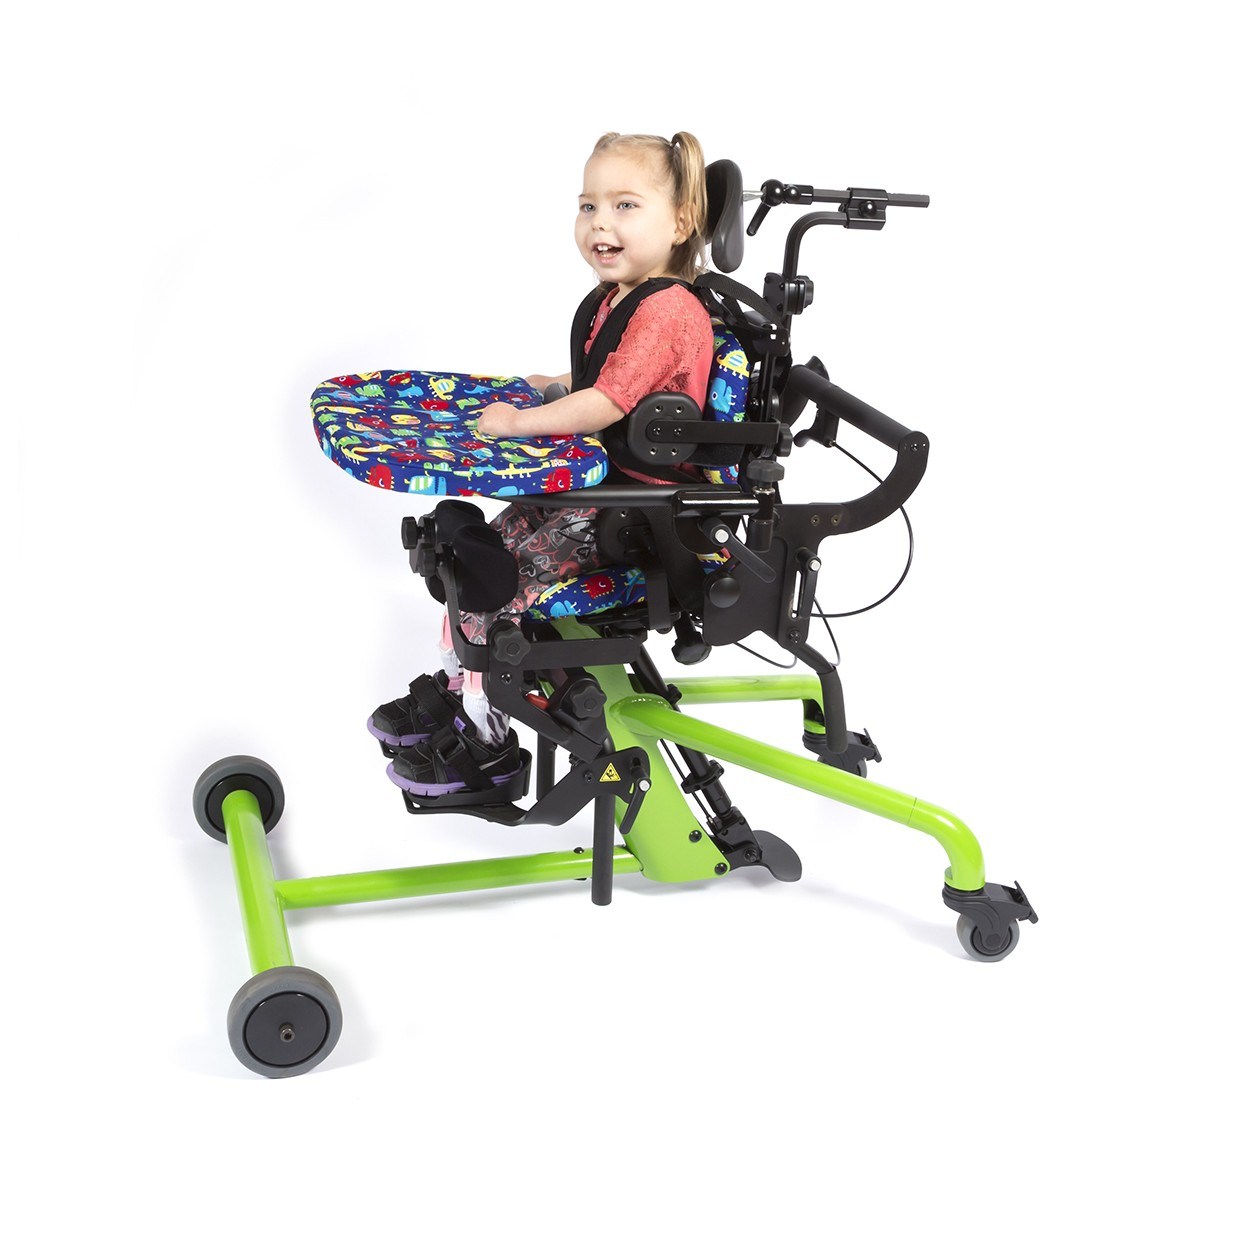 Child sitting in a Green EasyStand Bantam Extra Small